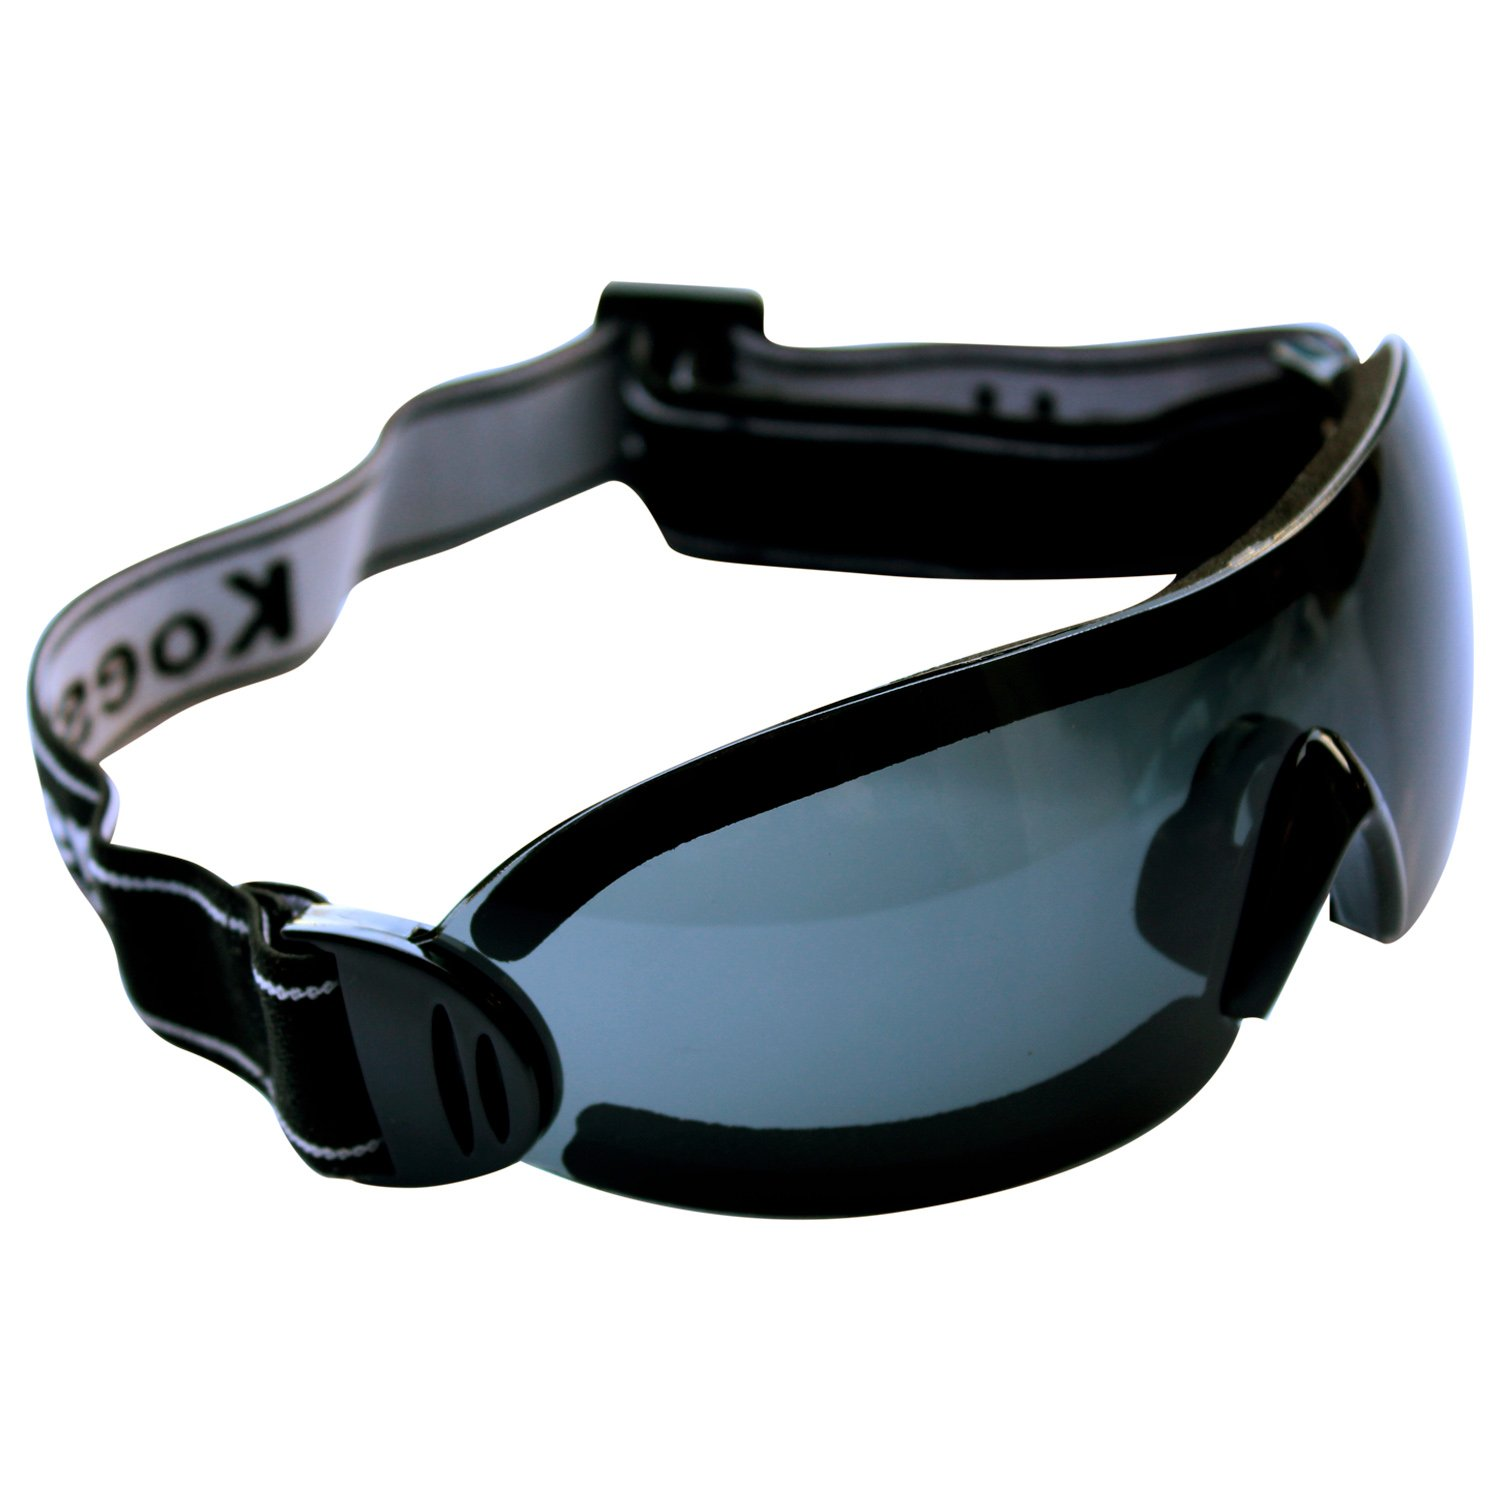 0c78aca2876 Cycling Glasses Online   Buy Glasses for Cycling in India   Best ...